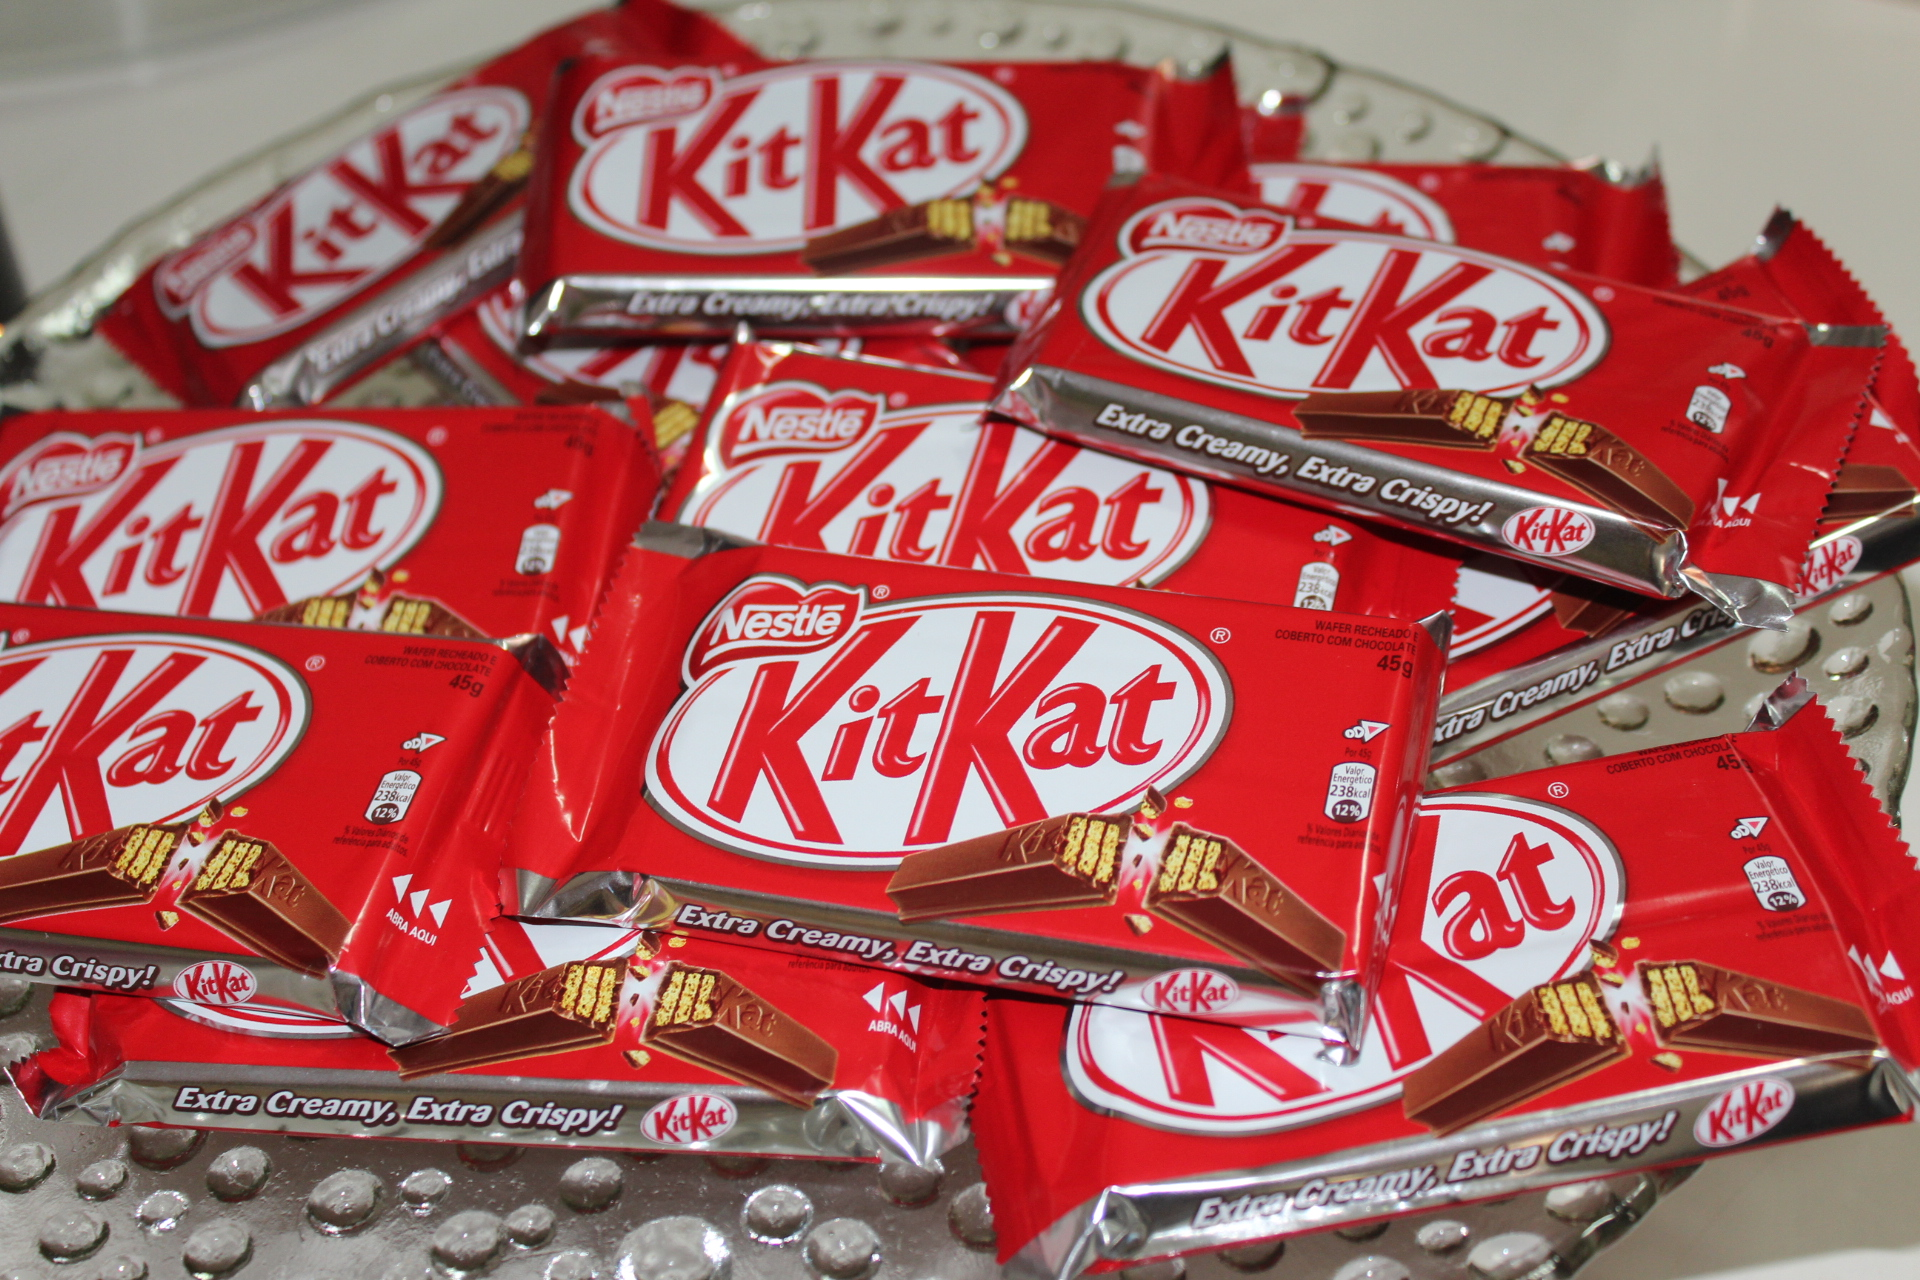 Pegue 14 barrinhas de kit kat